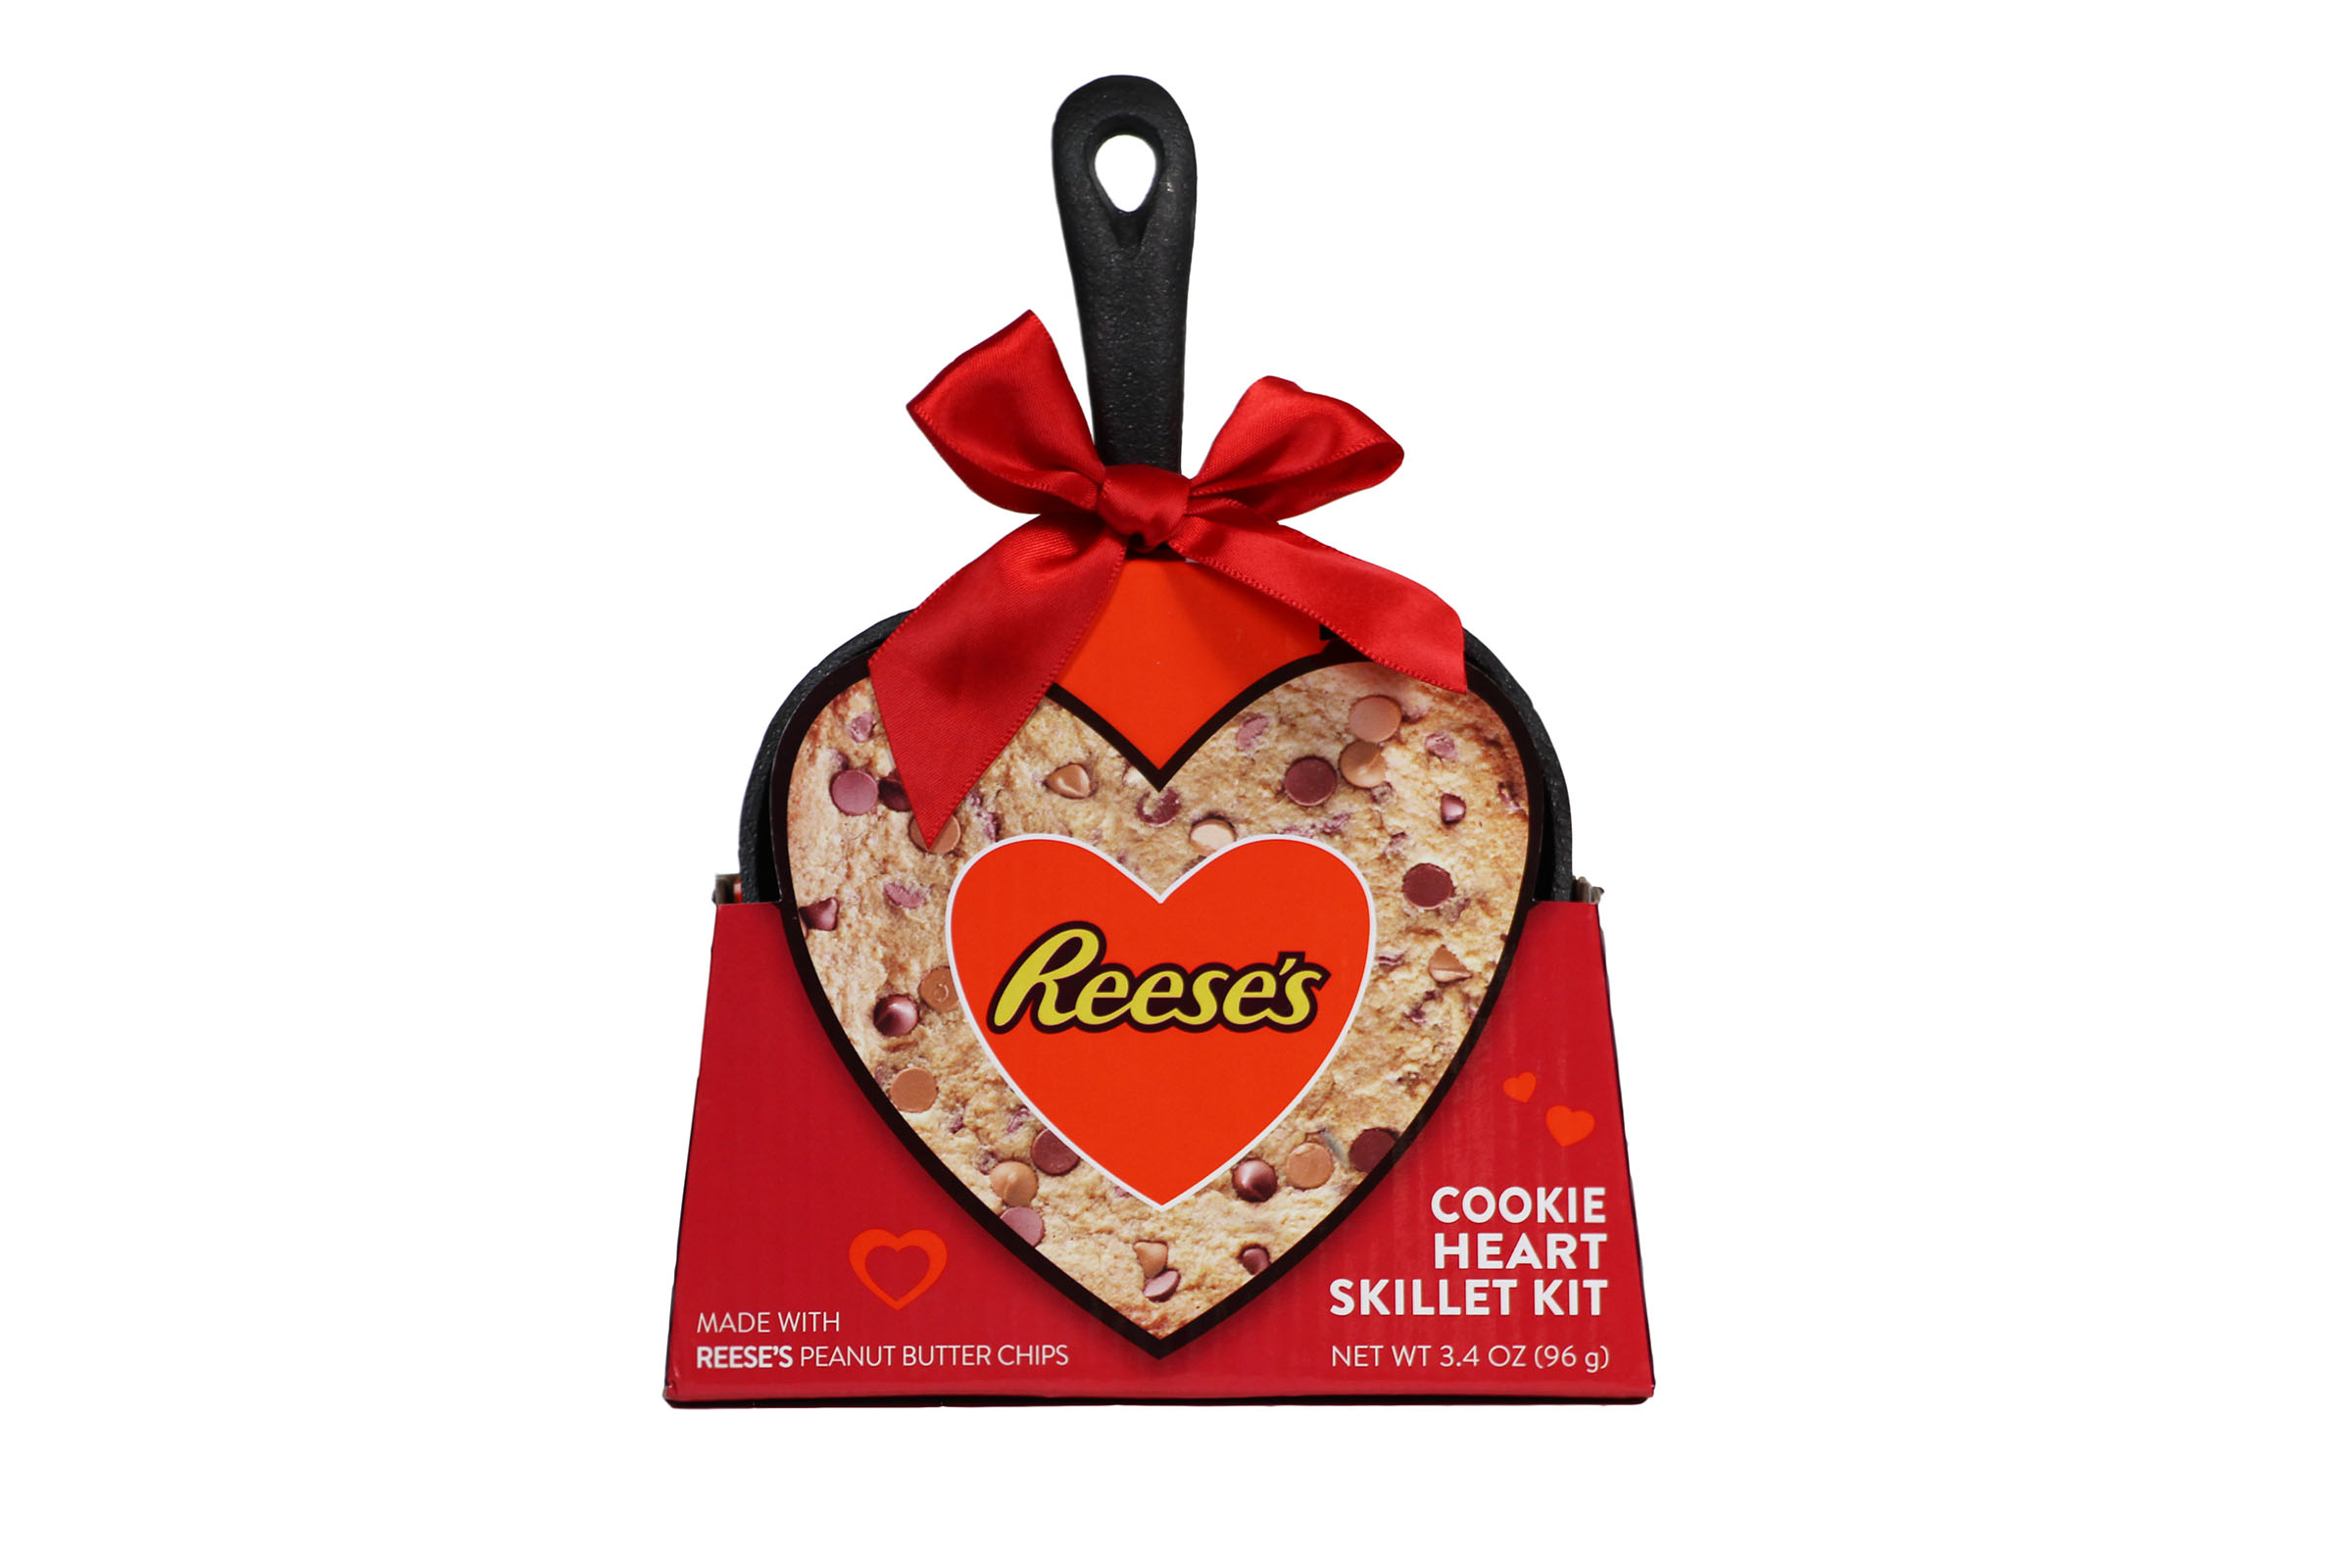 Target Debuts New Reese's Cookie Skillet to Spread the Love for Valentine's Day